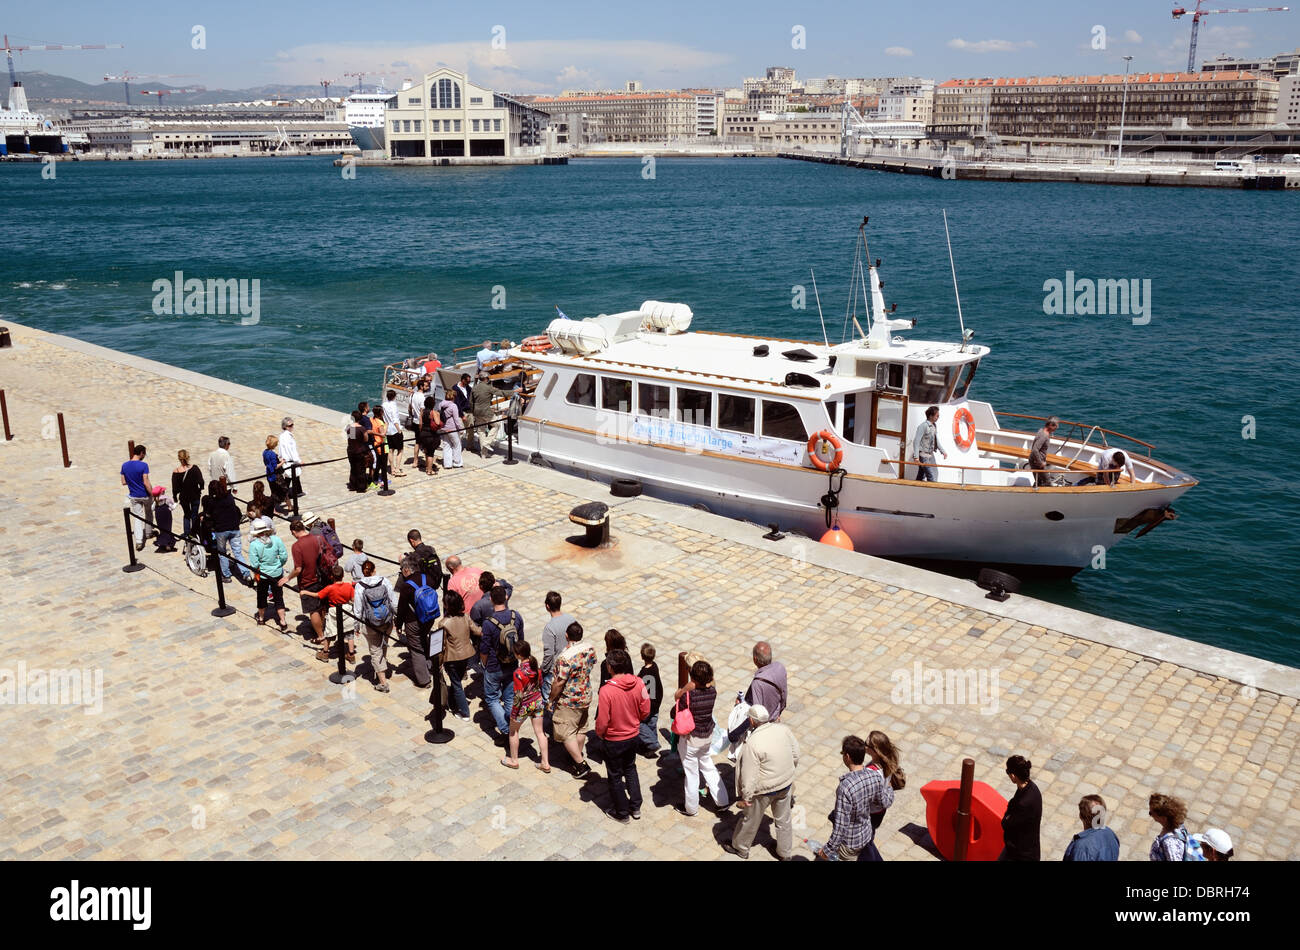 Queue for Ferry Boat in Marseille Harbour or Port France - Stock Image